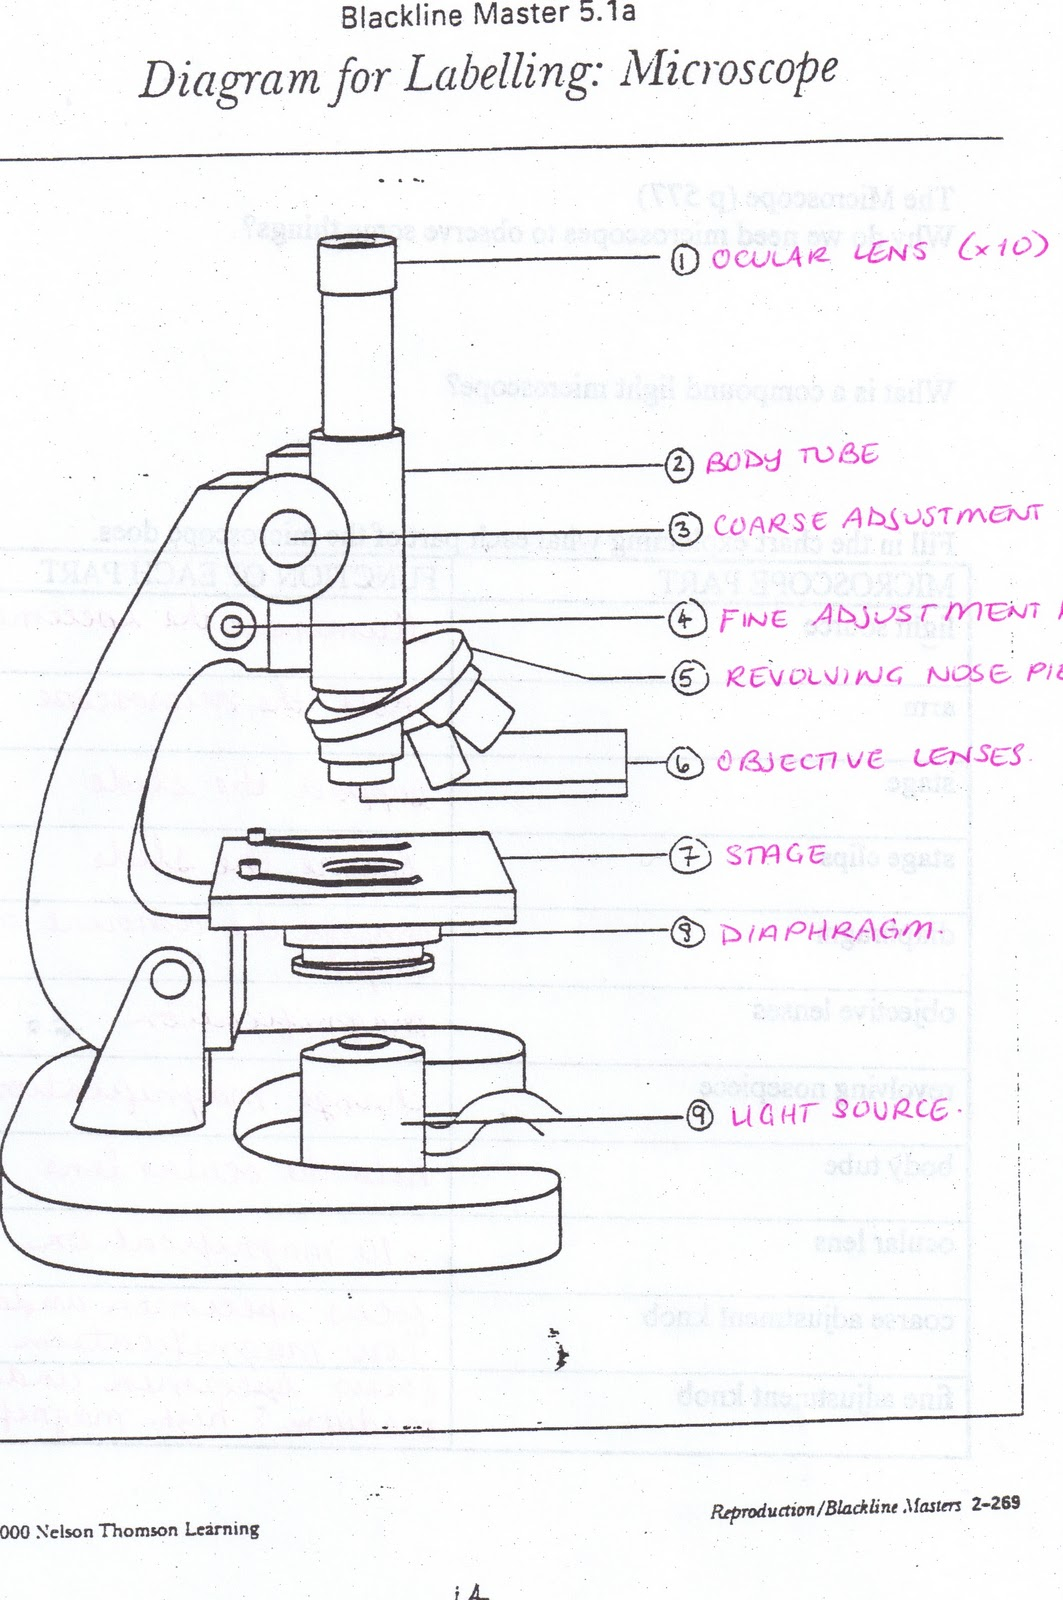 Free Microscope Drawing Download Free Clip Art Free Clip Art On Clipart Library